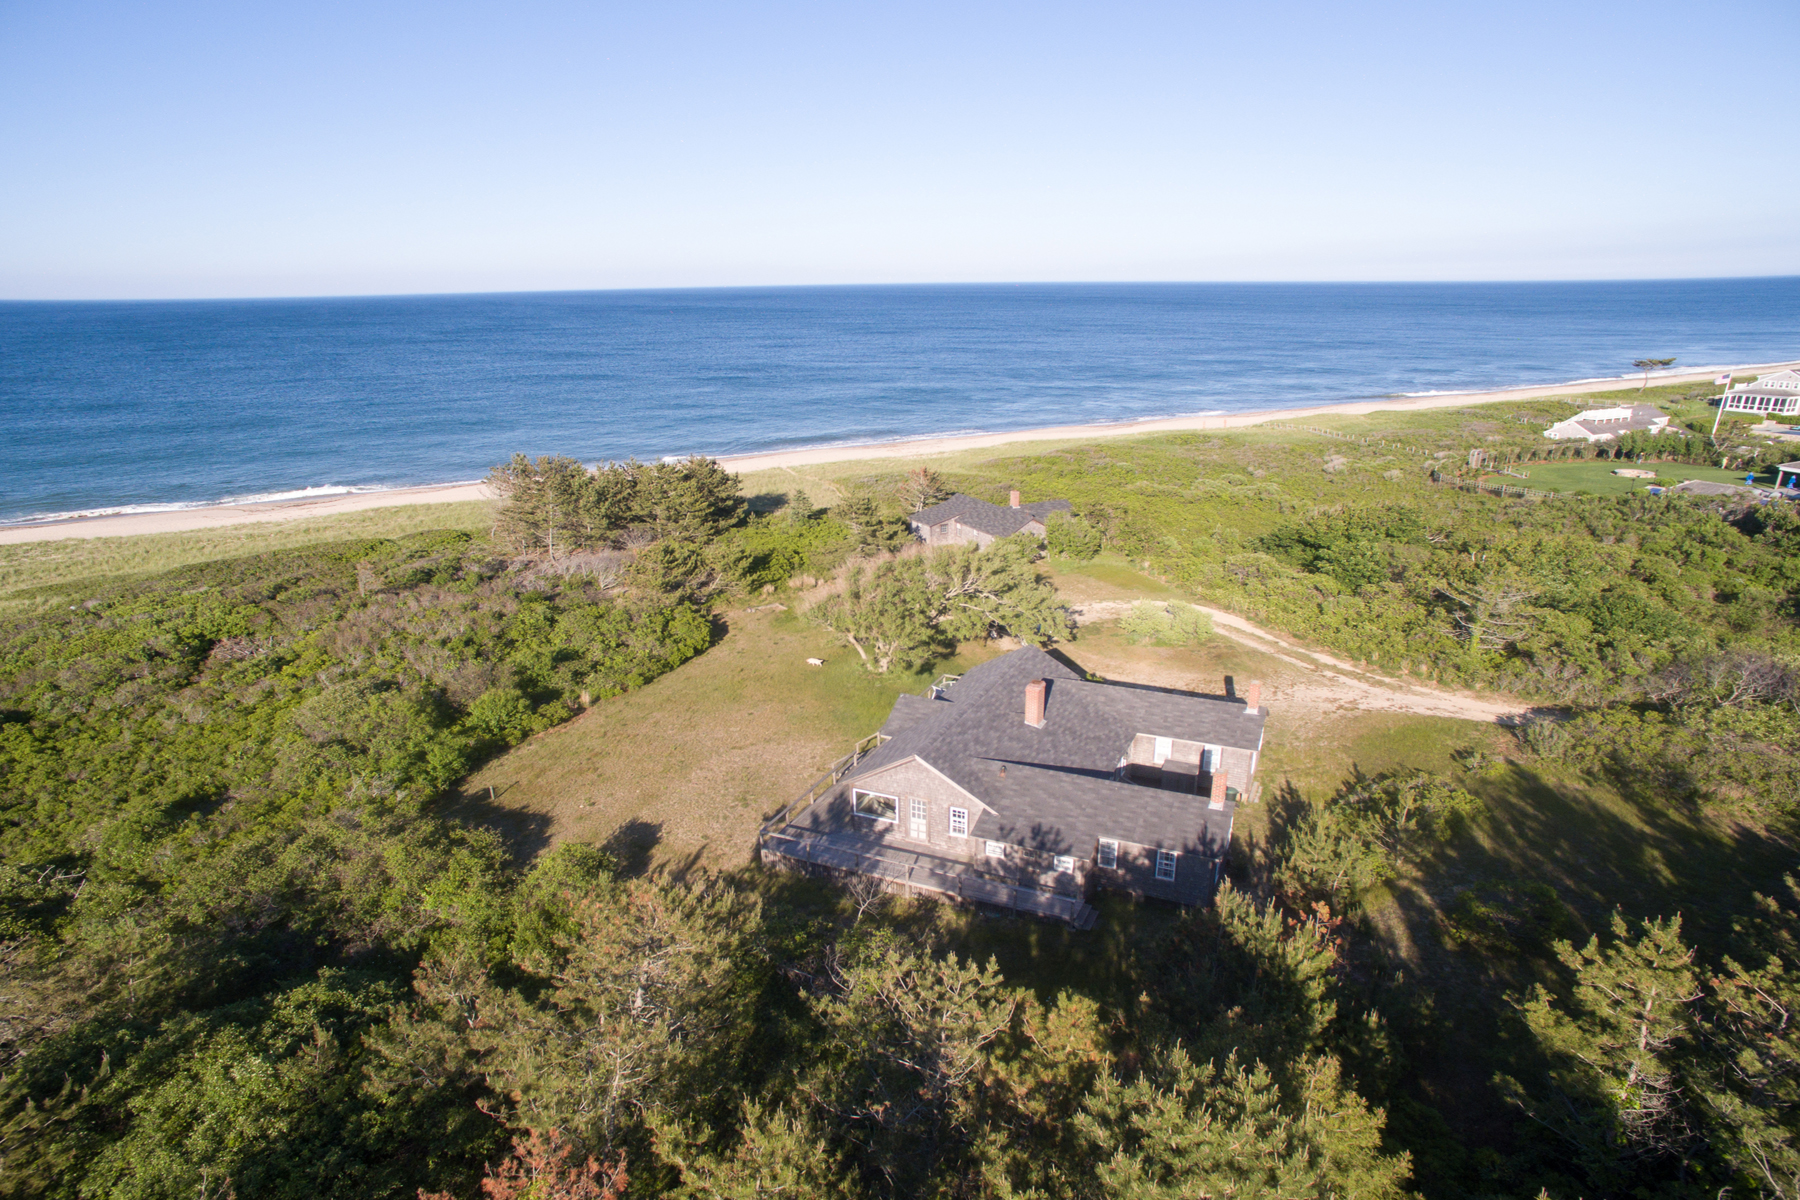 Casa Unifamiliar por un Venta en Quiet Stretch of Paradise 17 Squam Road Nantucket, Massachusetts, 02554 Estados Unidos